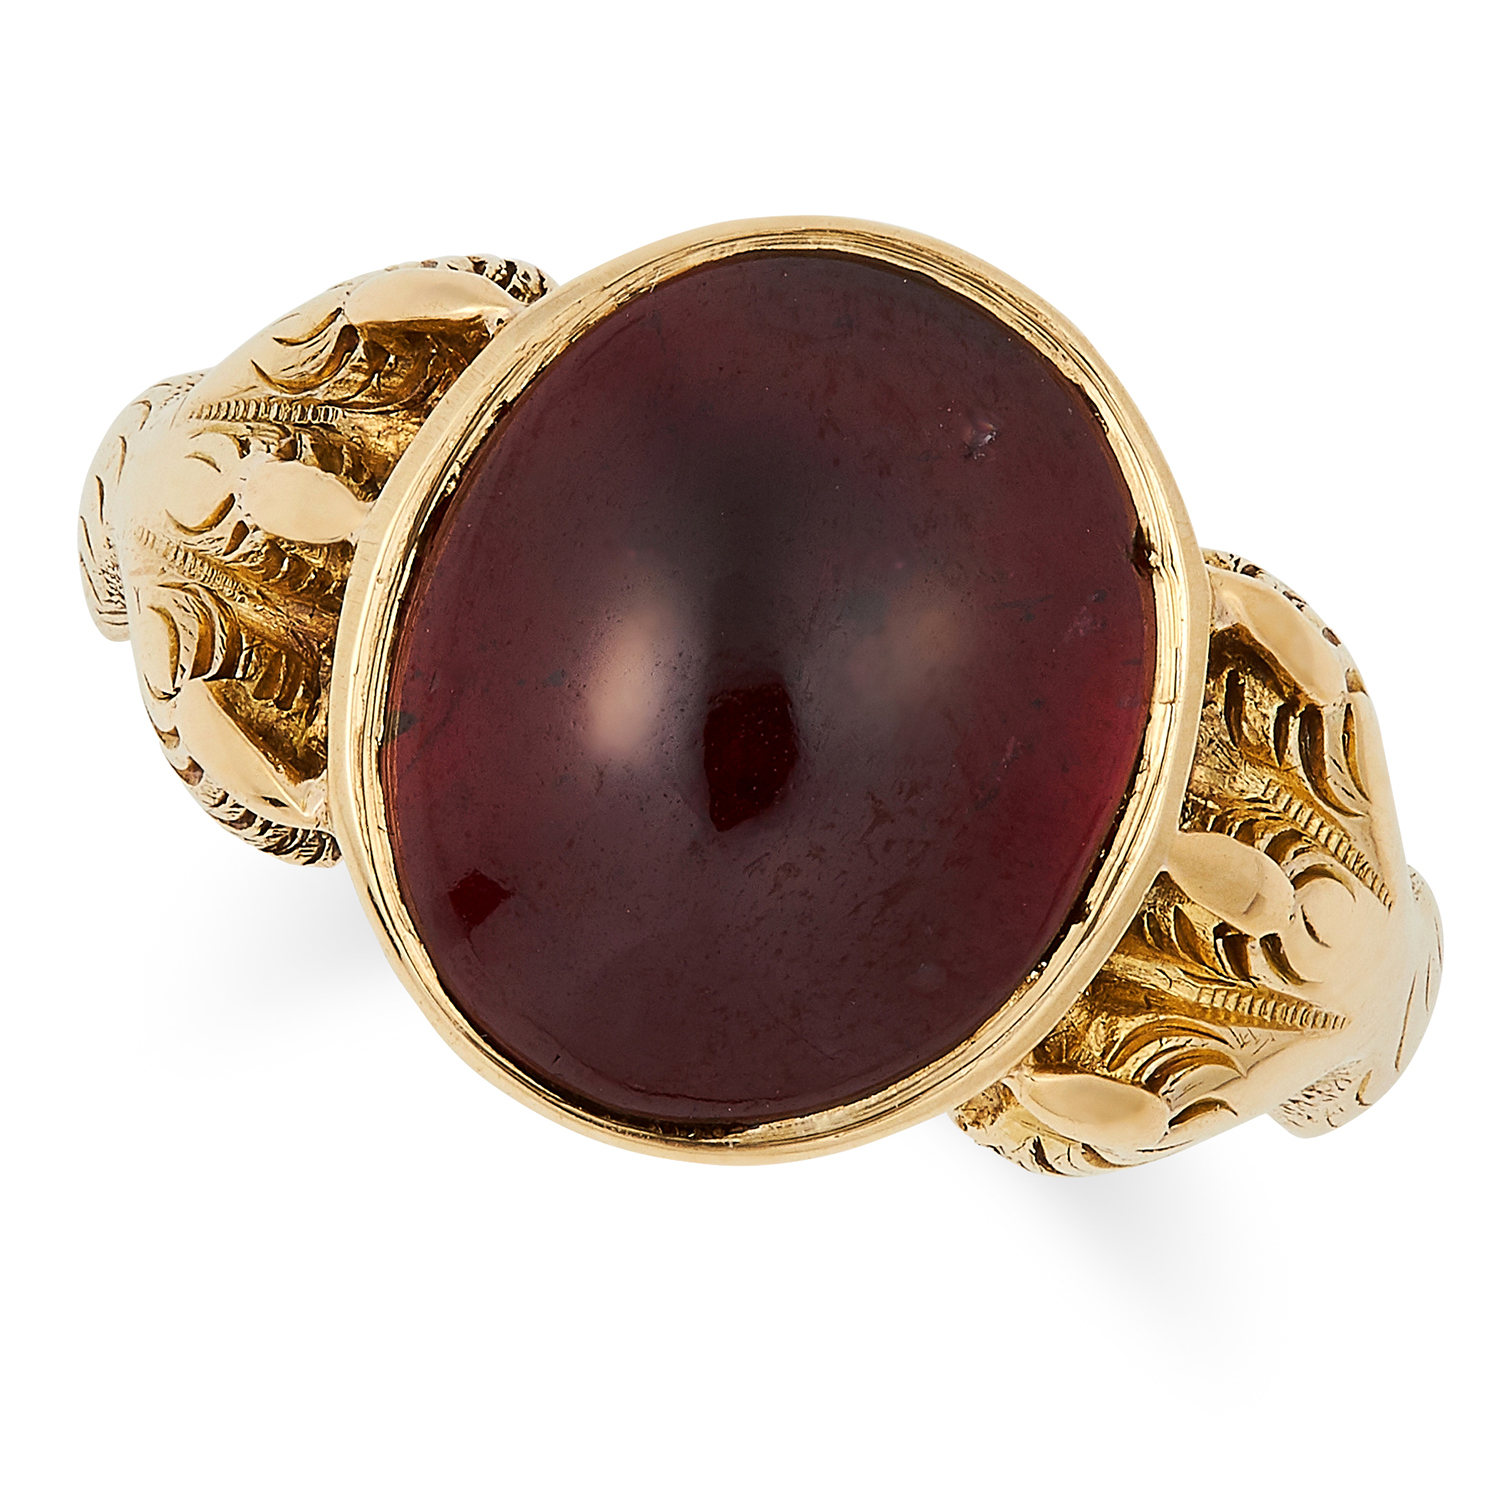 Los 26 - ANTIQUE GARNET DRESS RING set with a cabochon garnet between gold claws, size M / 6, 4.5g.